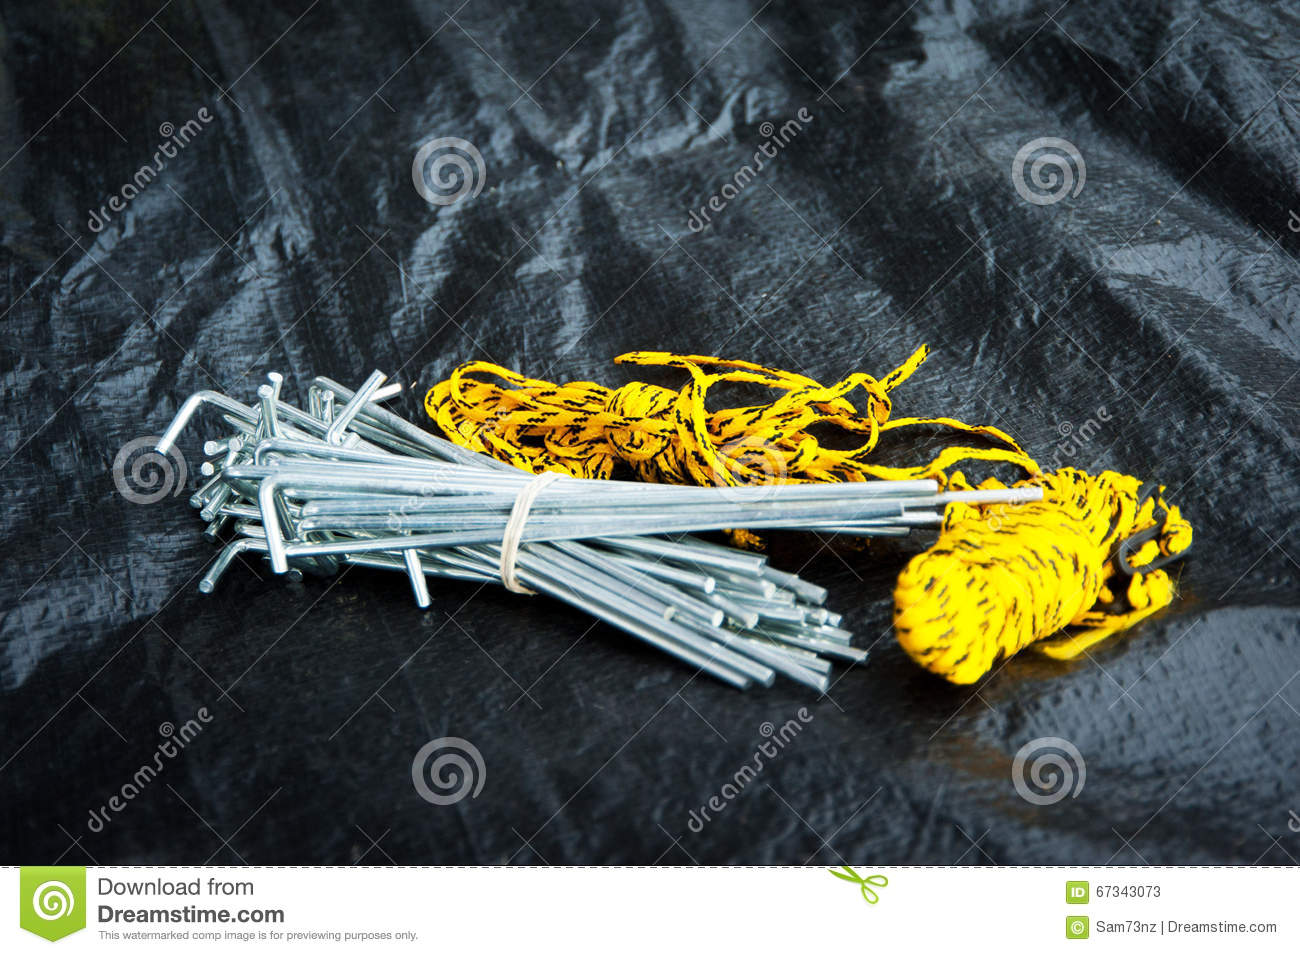 Bunch of tent pegs on black tent ground sheet & Bunch of tent pegs stock image. Image of sheet outdoor - 67343073